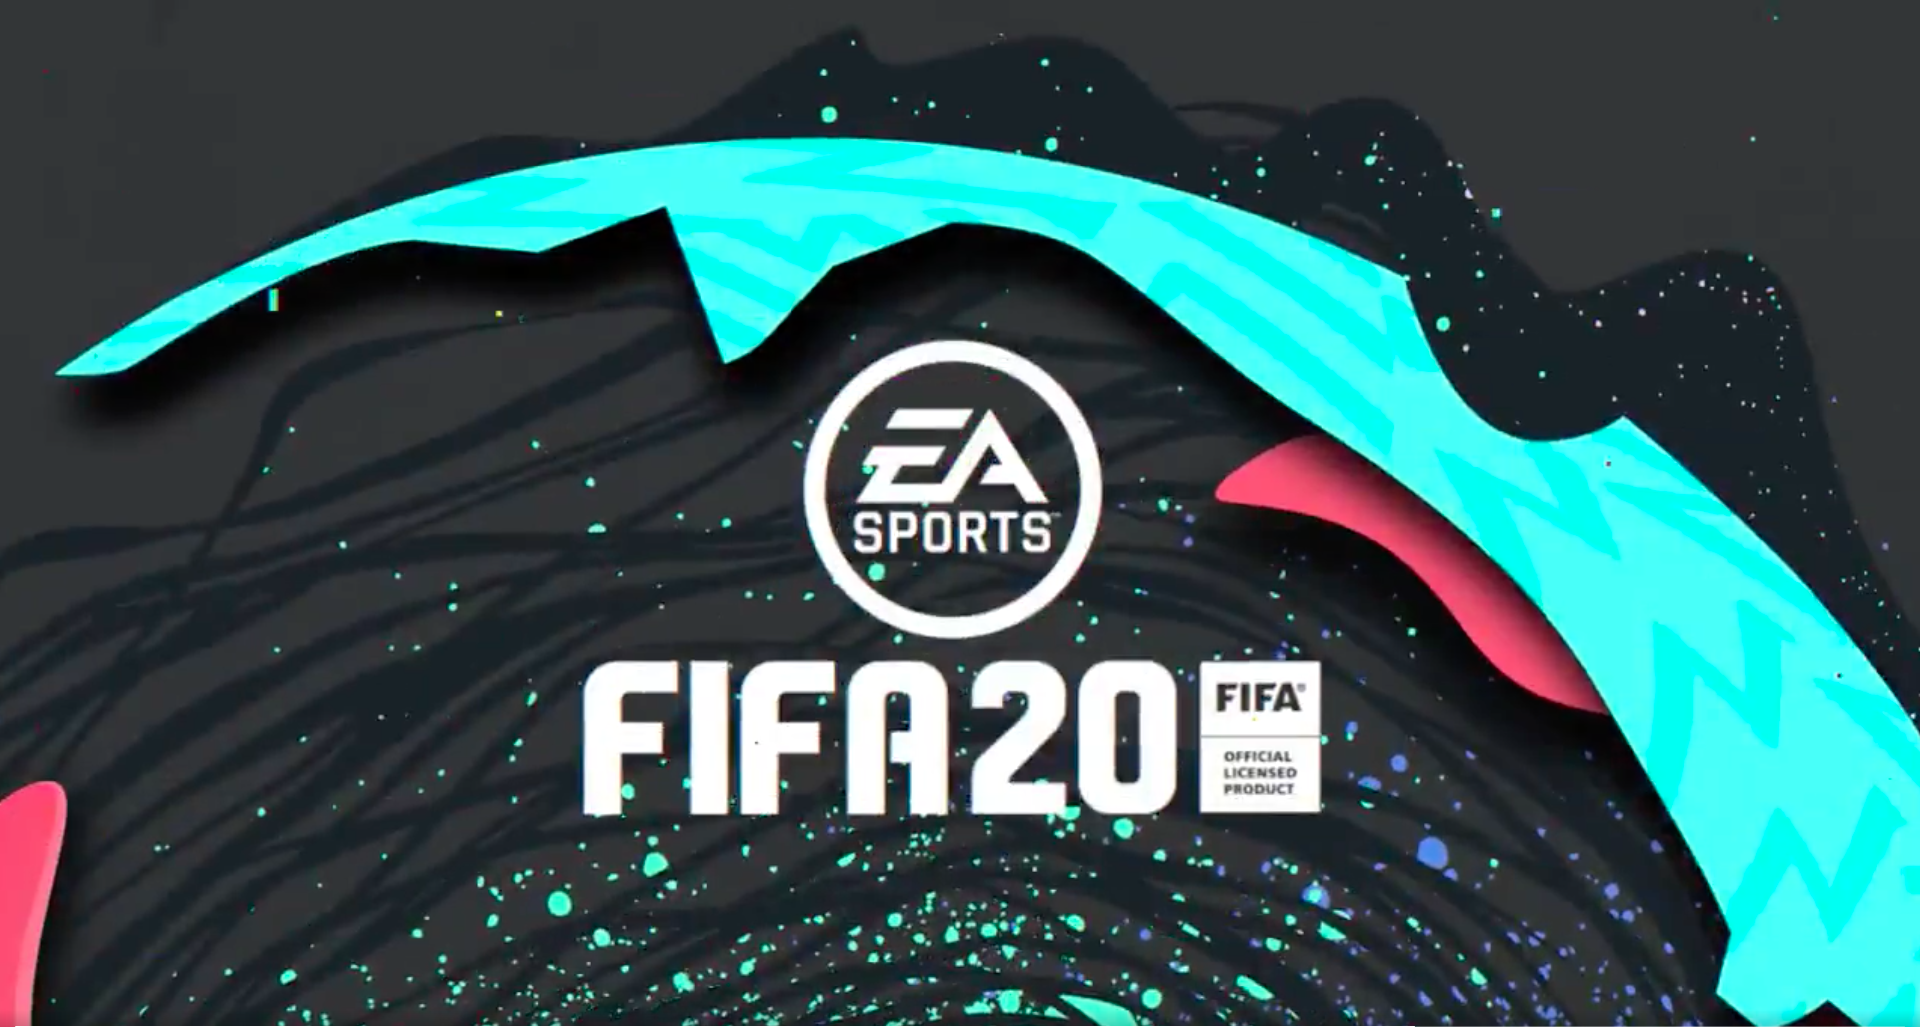 FIFA20 FUT20💢 / 3й сезон WL Open PACKS SBC / Фифа 20